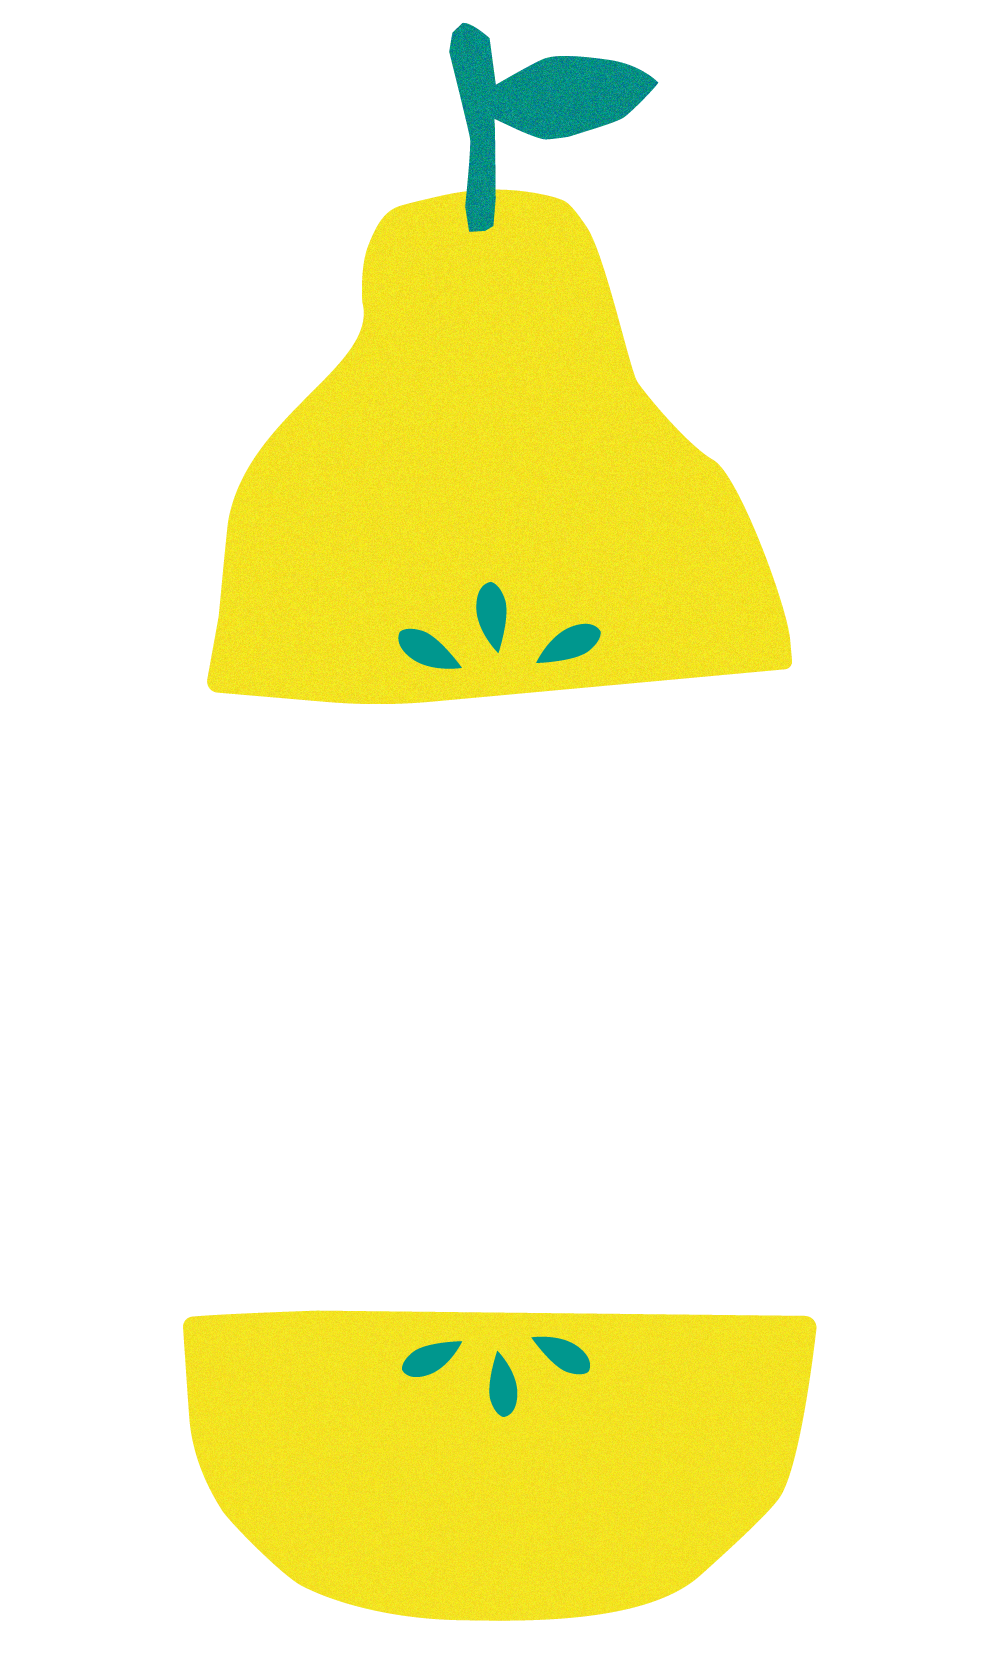 Find-us-at.png